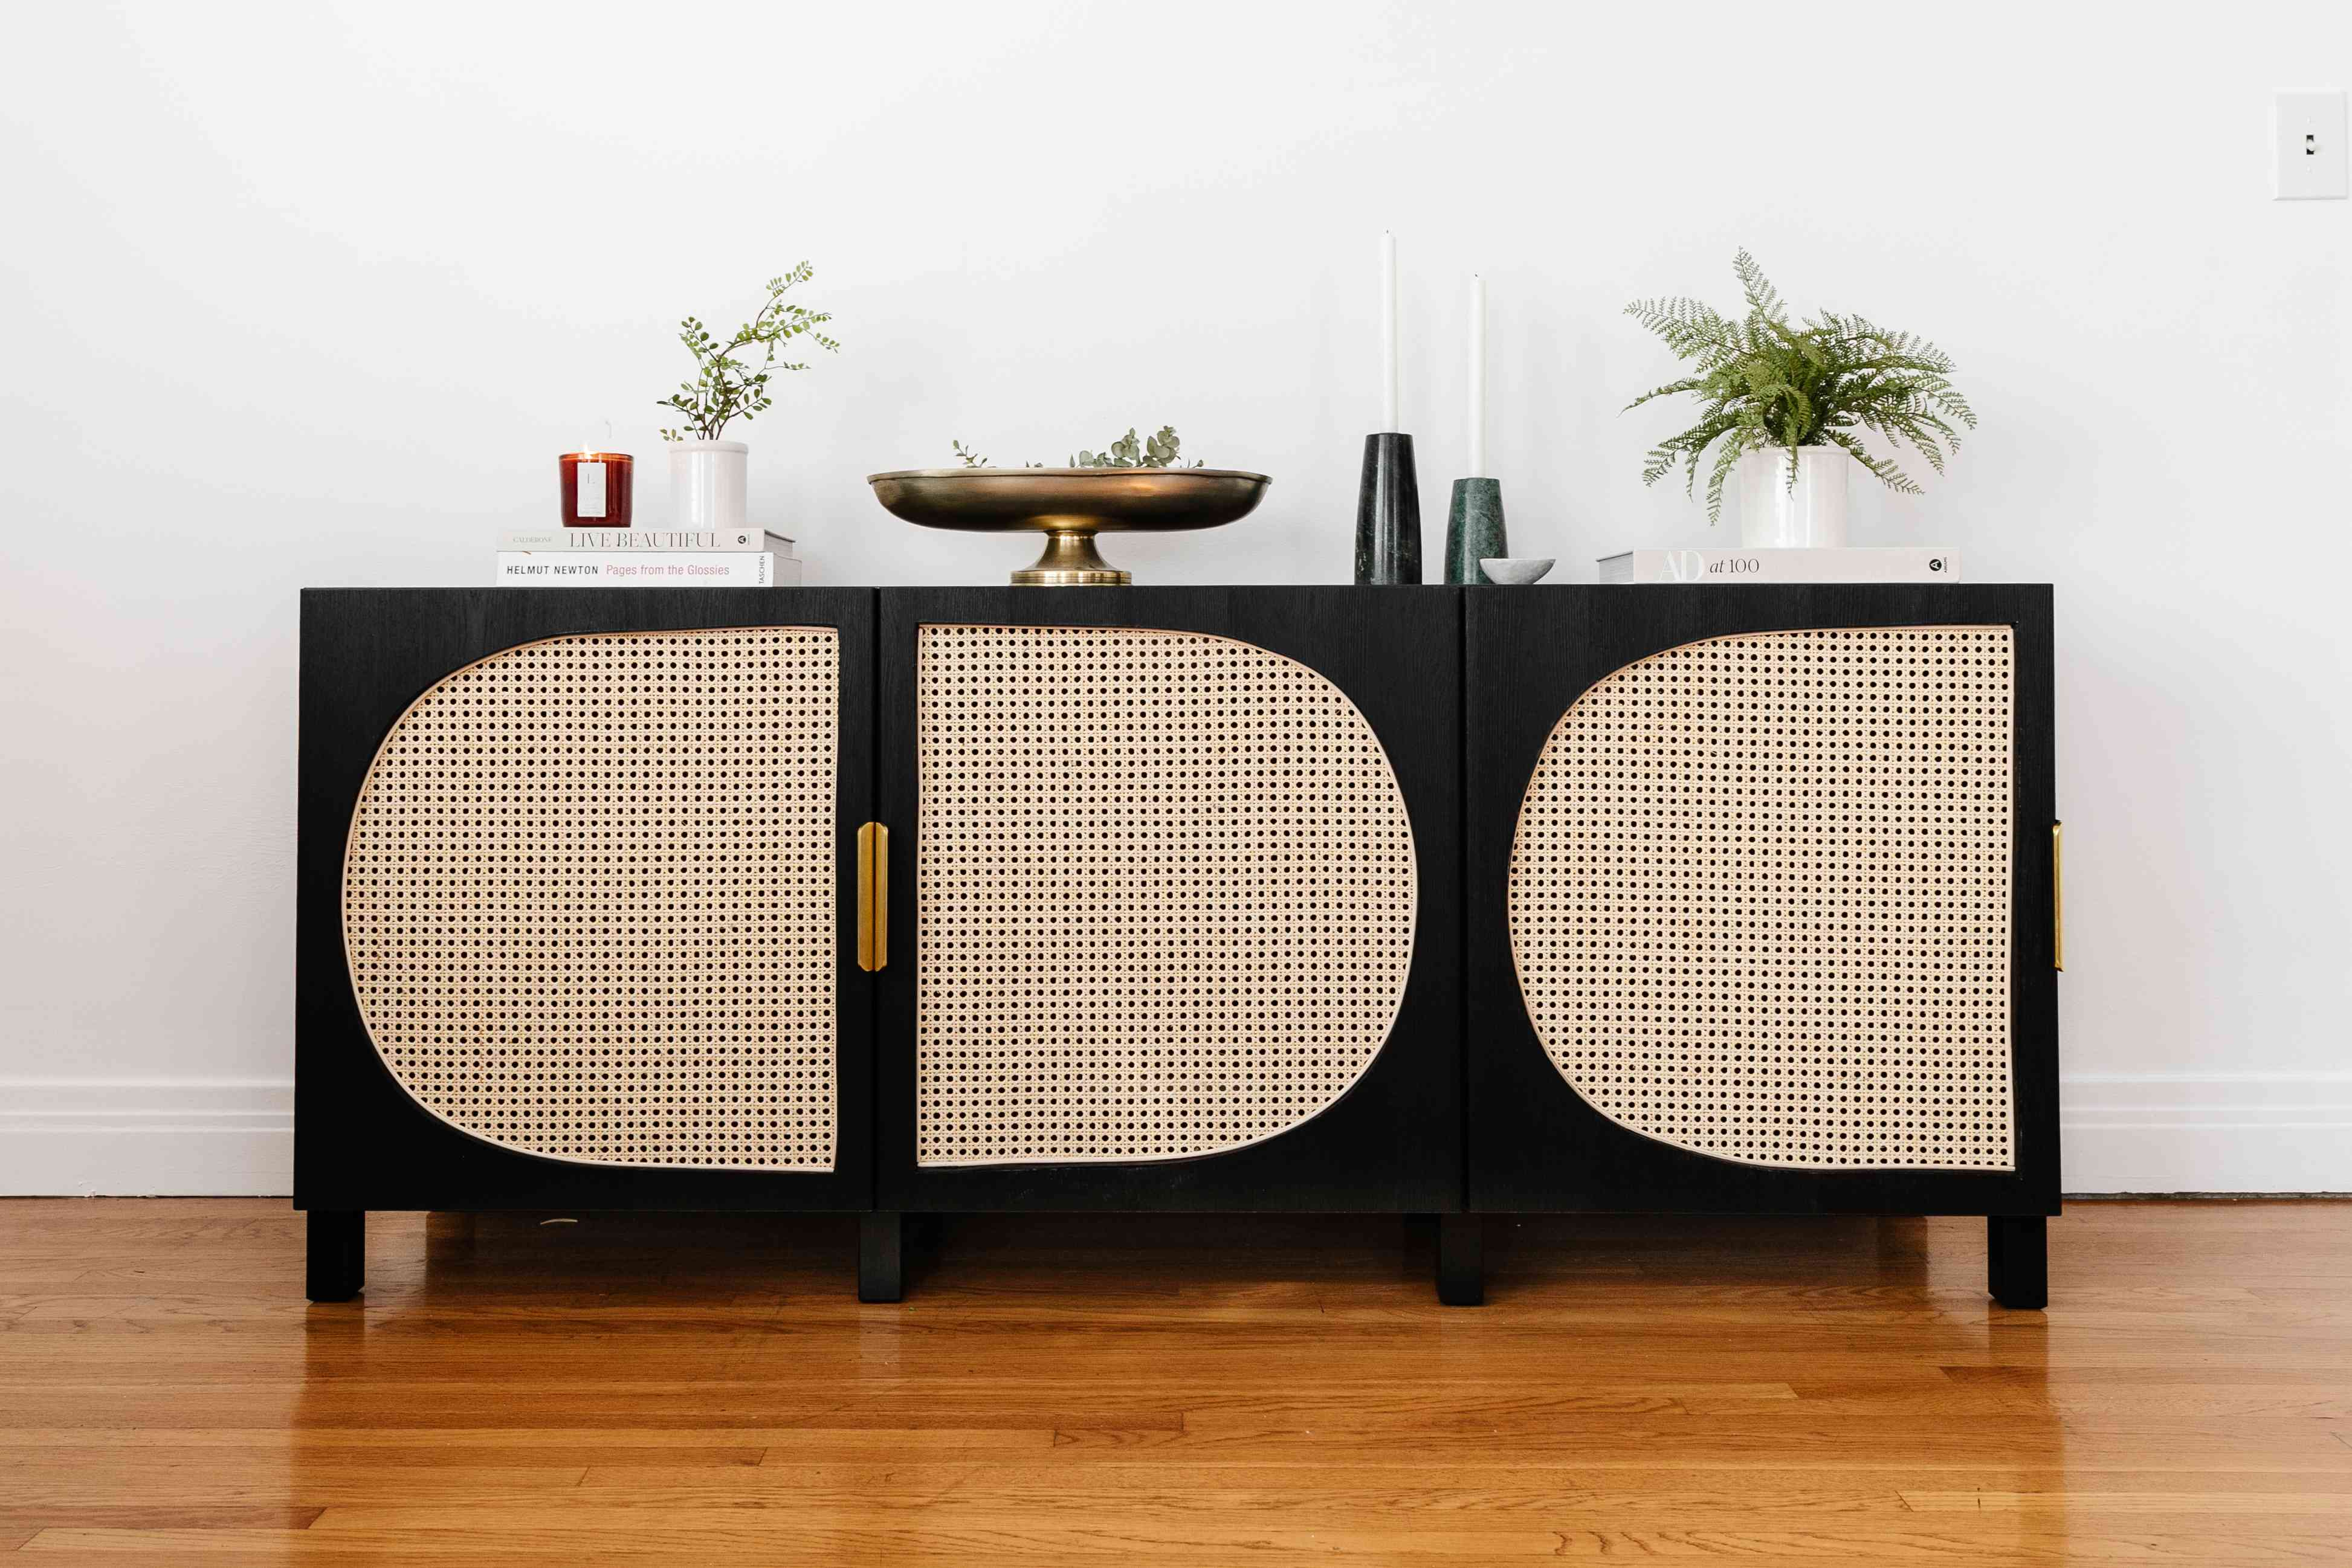 lone fox media unit - with cane backing styled with books and plants